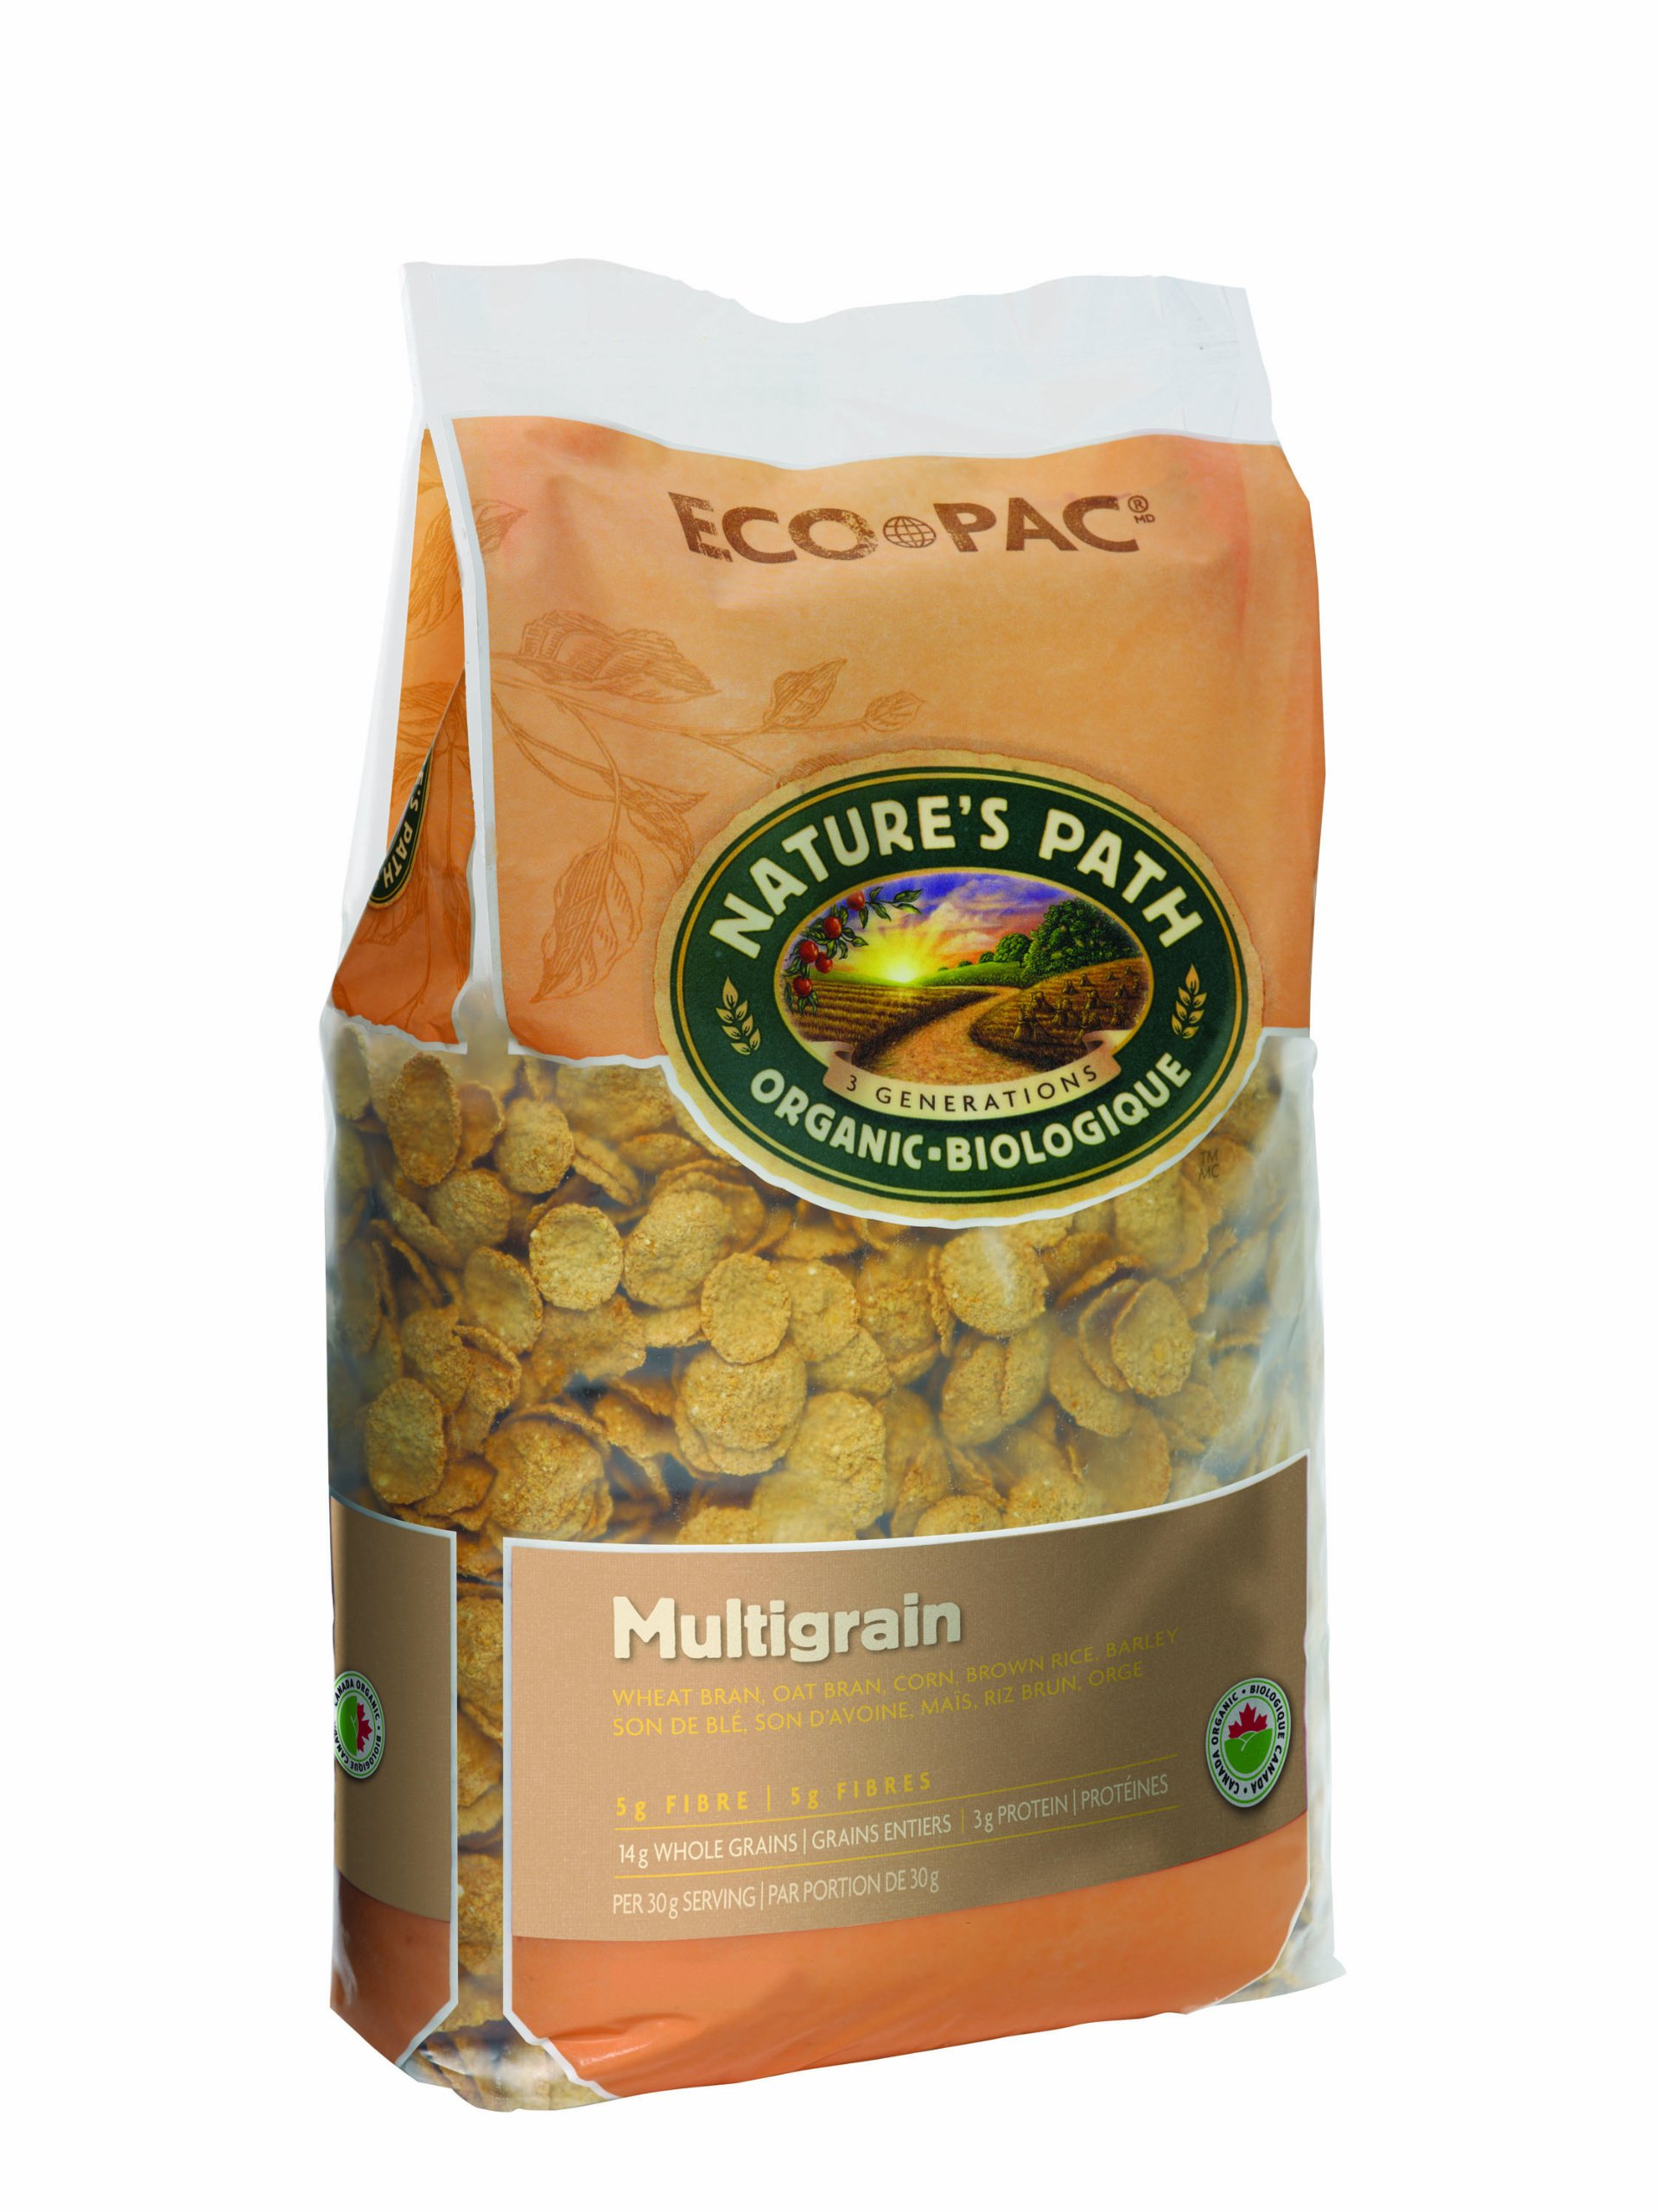 Nature's Path, Multi-Grain Flakes Cereal, Eco Pak, 32 oz by Nature's Path (Image #1)